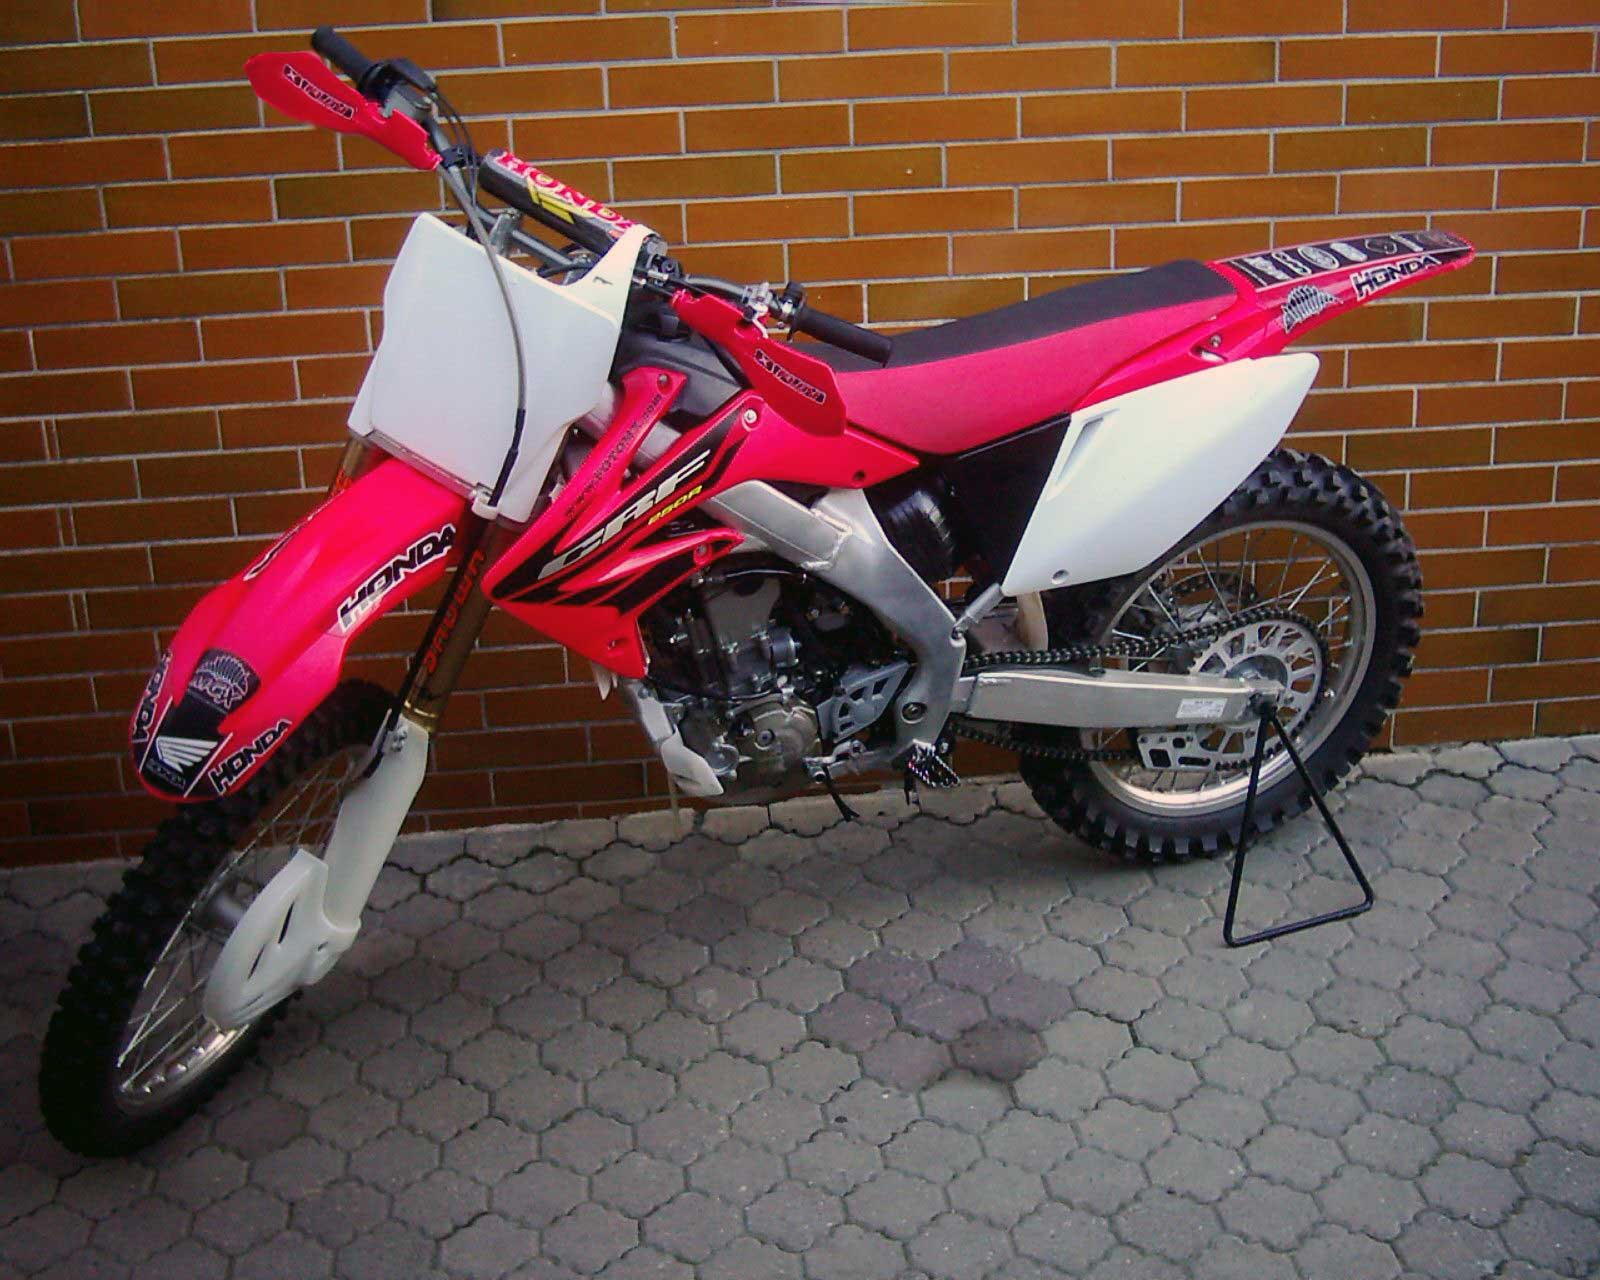 Groovy 2008 Honda Crf150F Top Speed Unemploymentrelief Wooden Chair Designs For Living Room Unemploymentrelieforg